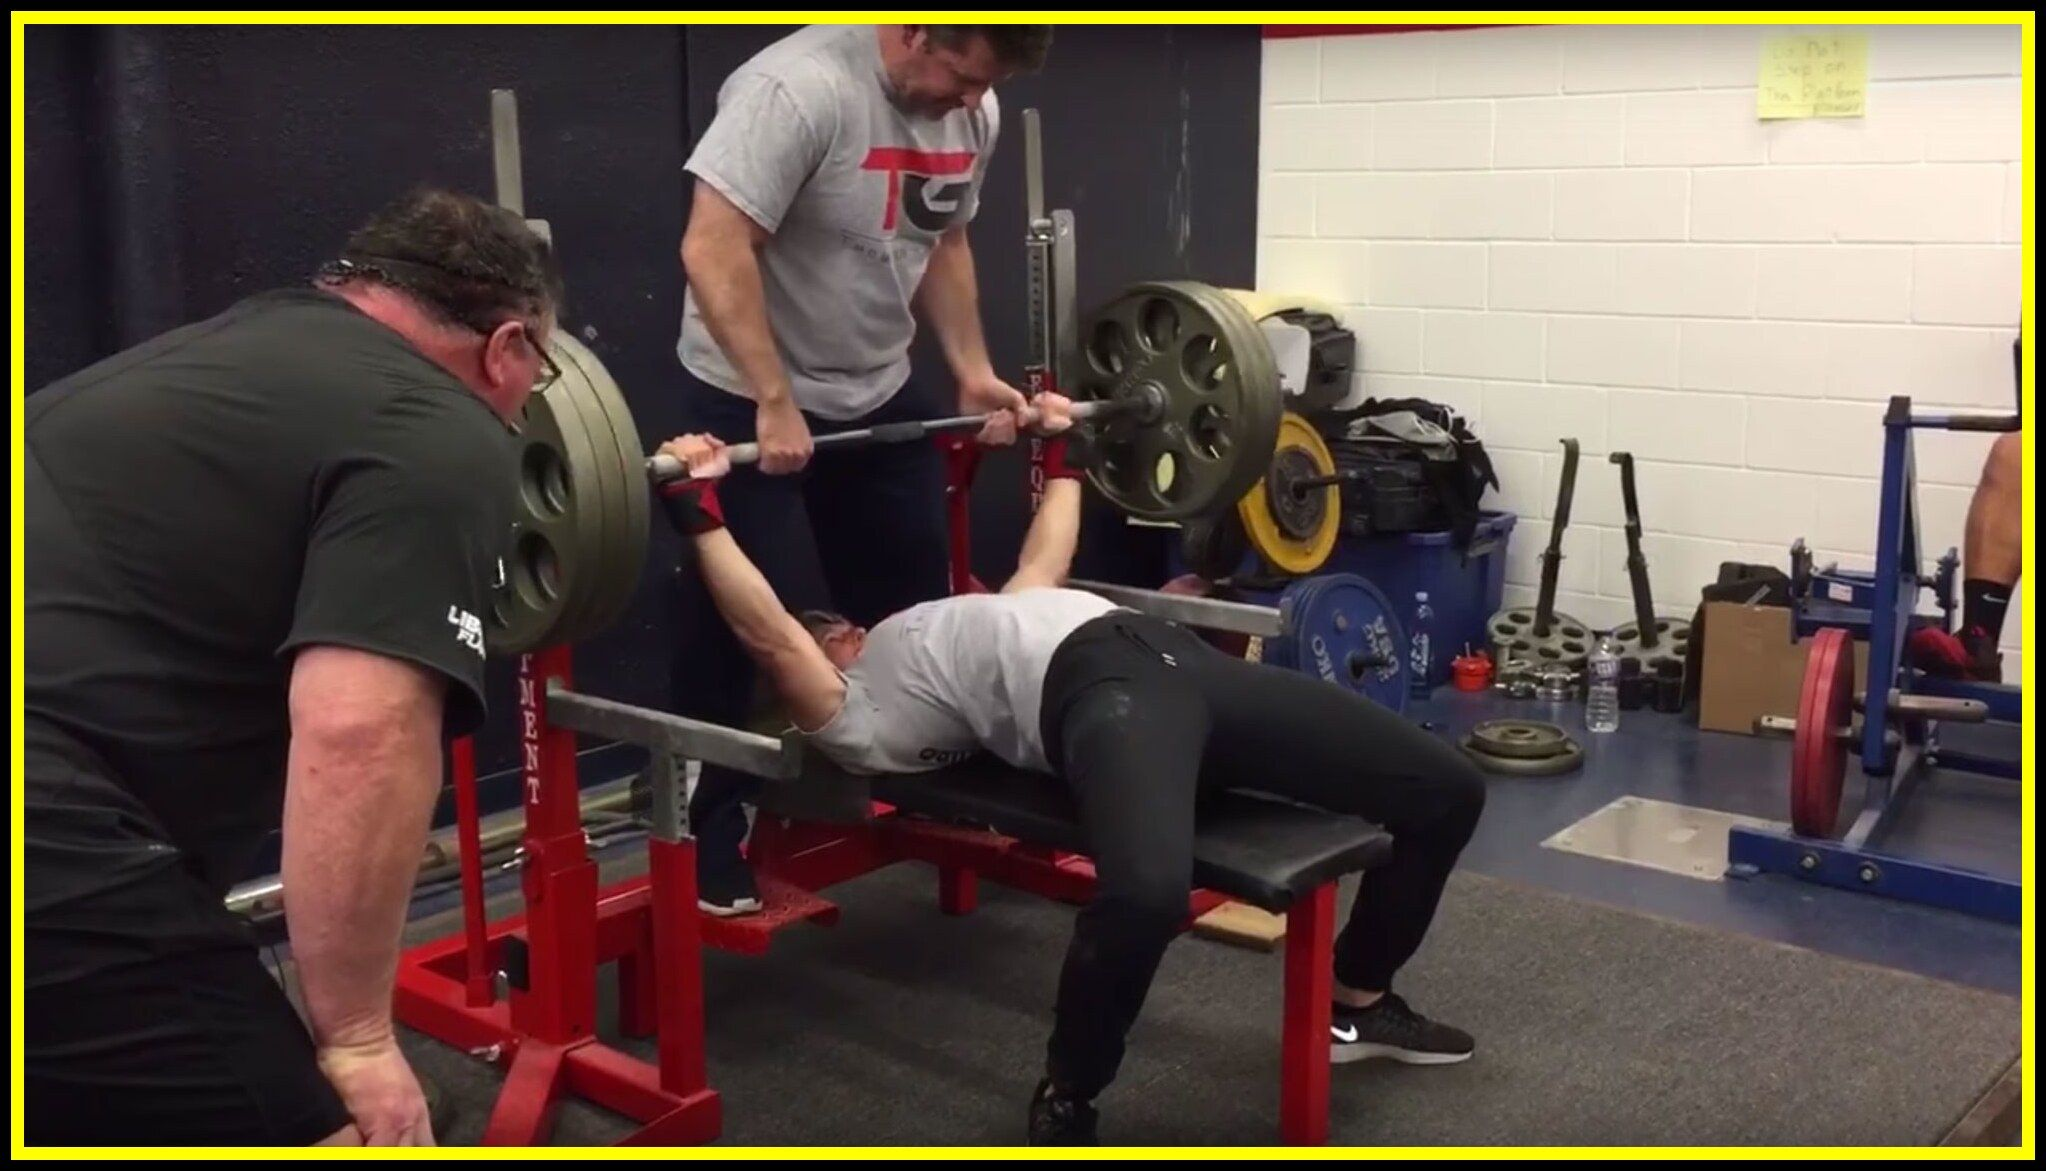 108 Reference Of Bench Press Woman Record In 2020 Bench Press Women Bench Press Bench Press Workout